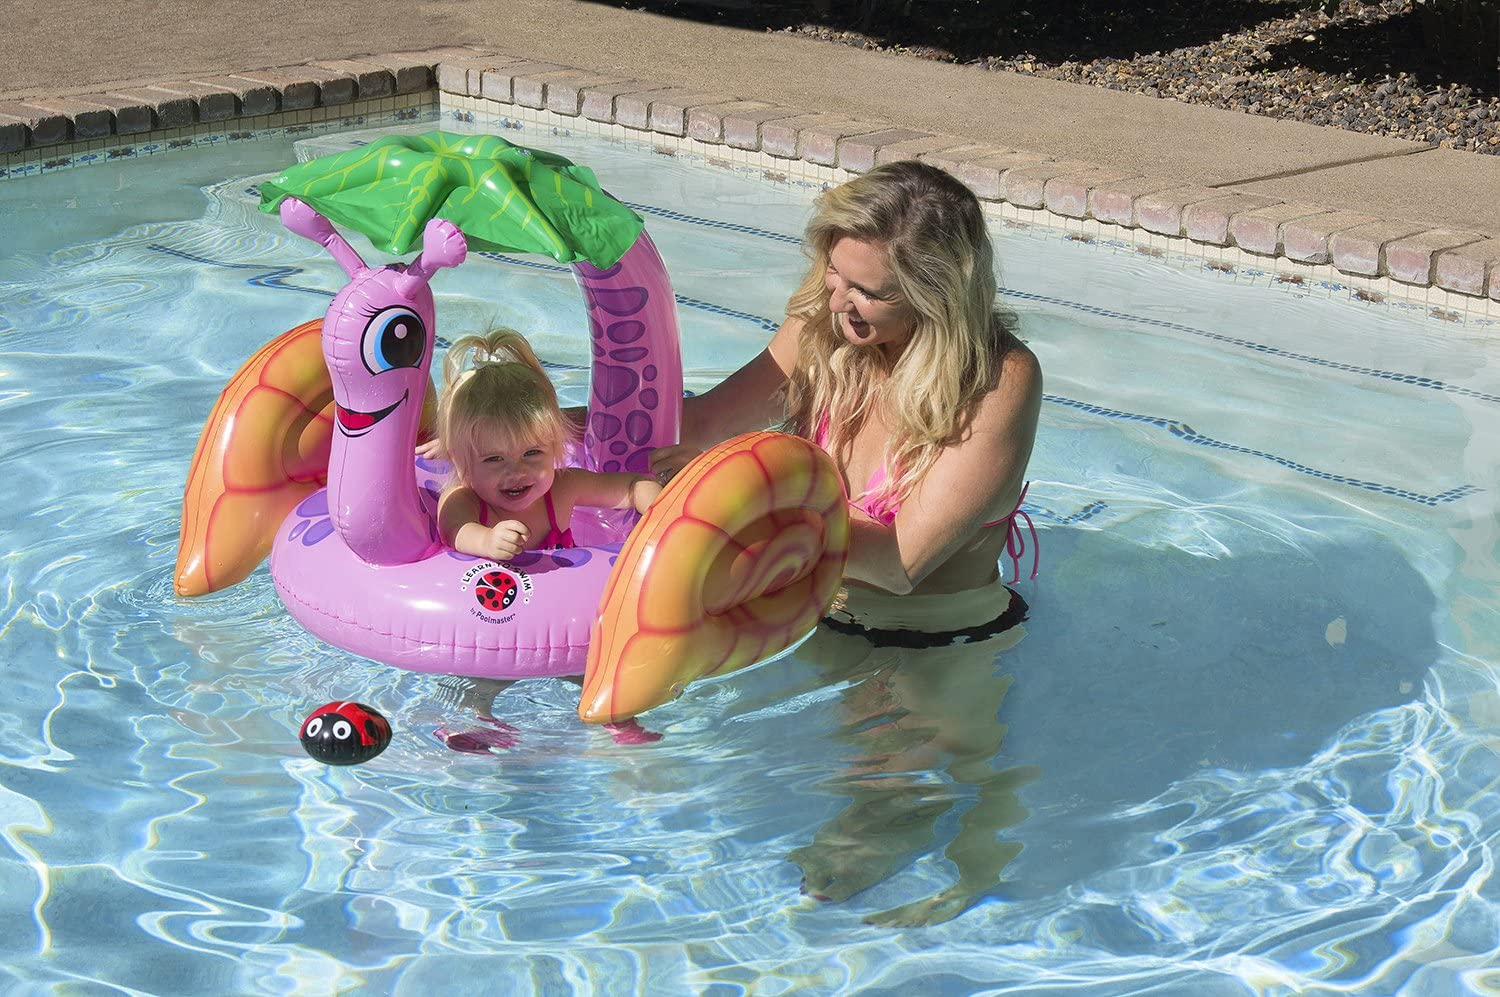 Poolmaster 81562 Learn-to-Swim Swimming Pool Float Baby Rider with Sun Protection, Snail